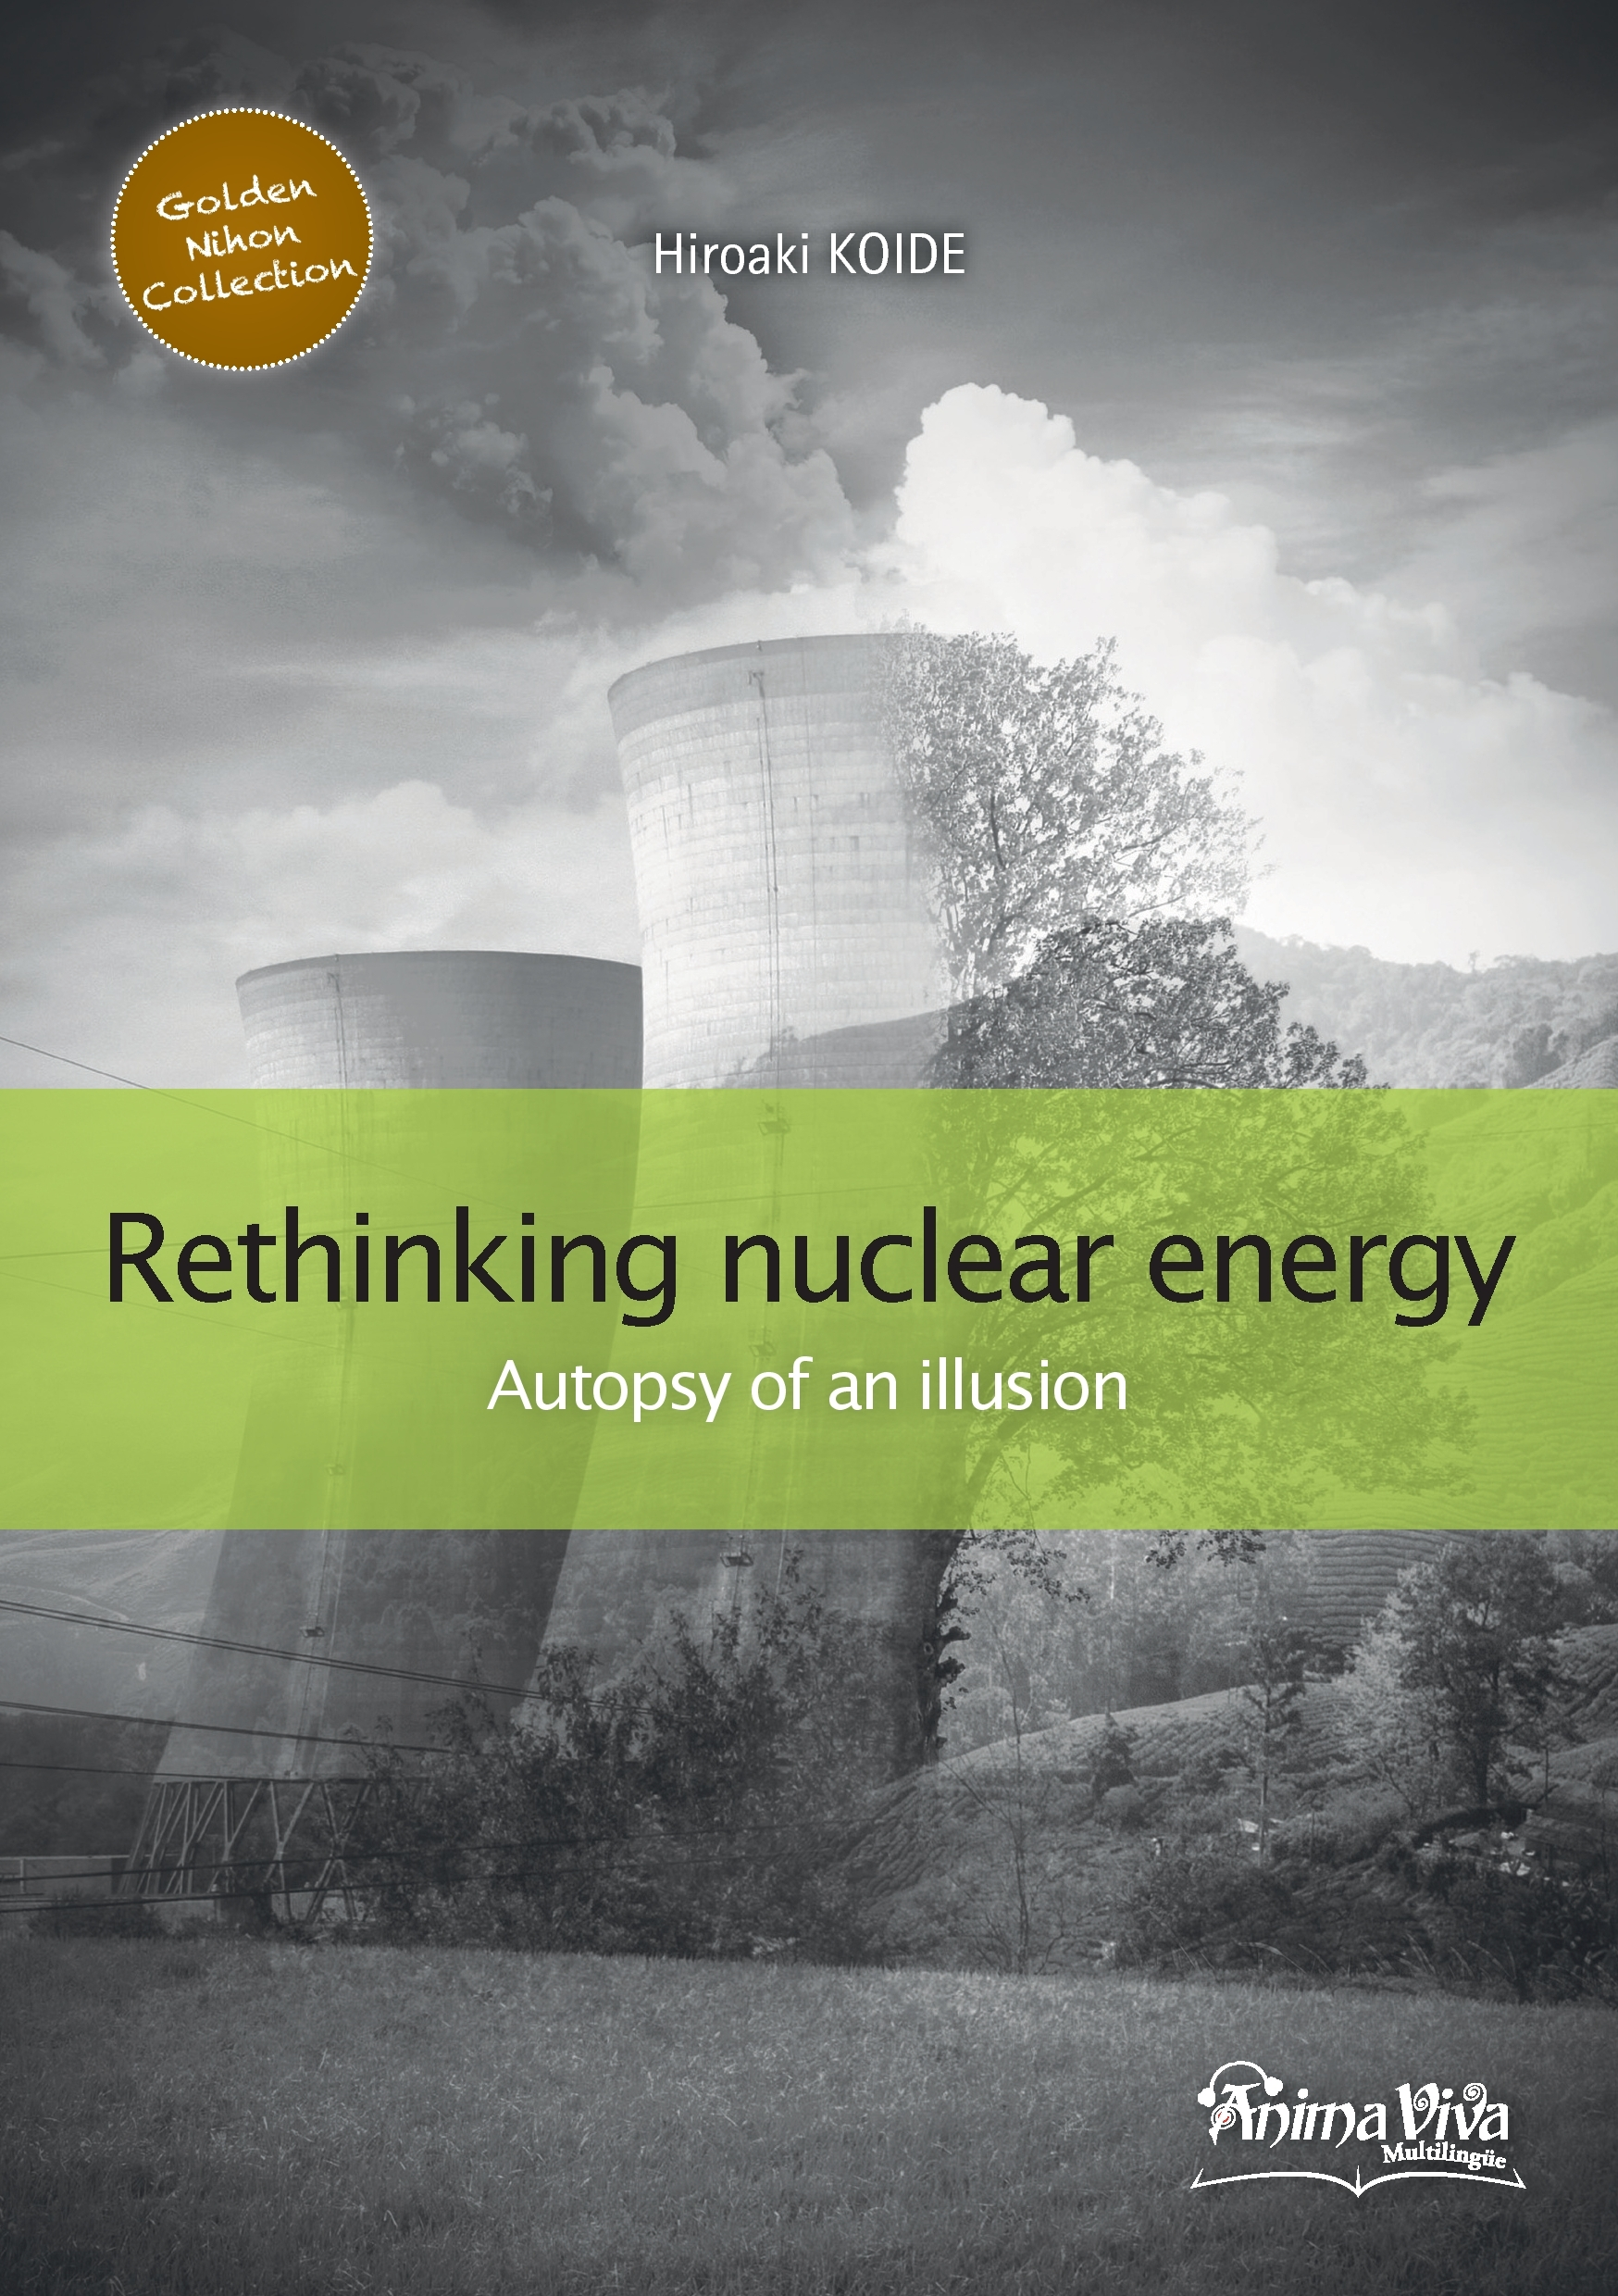 GOLDEN NIHON COLLECTION - T02 - RETHINKING NUCLEAR POWER - AUTOPSY OF AN ILLUSION